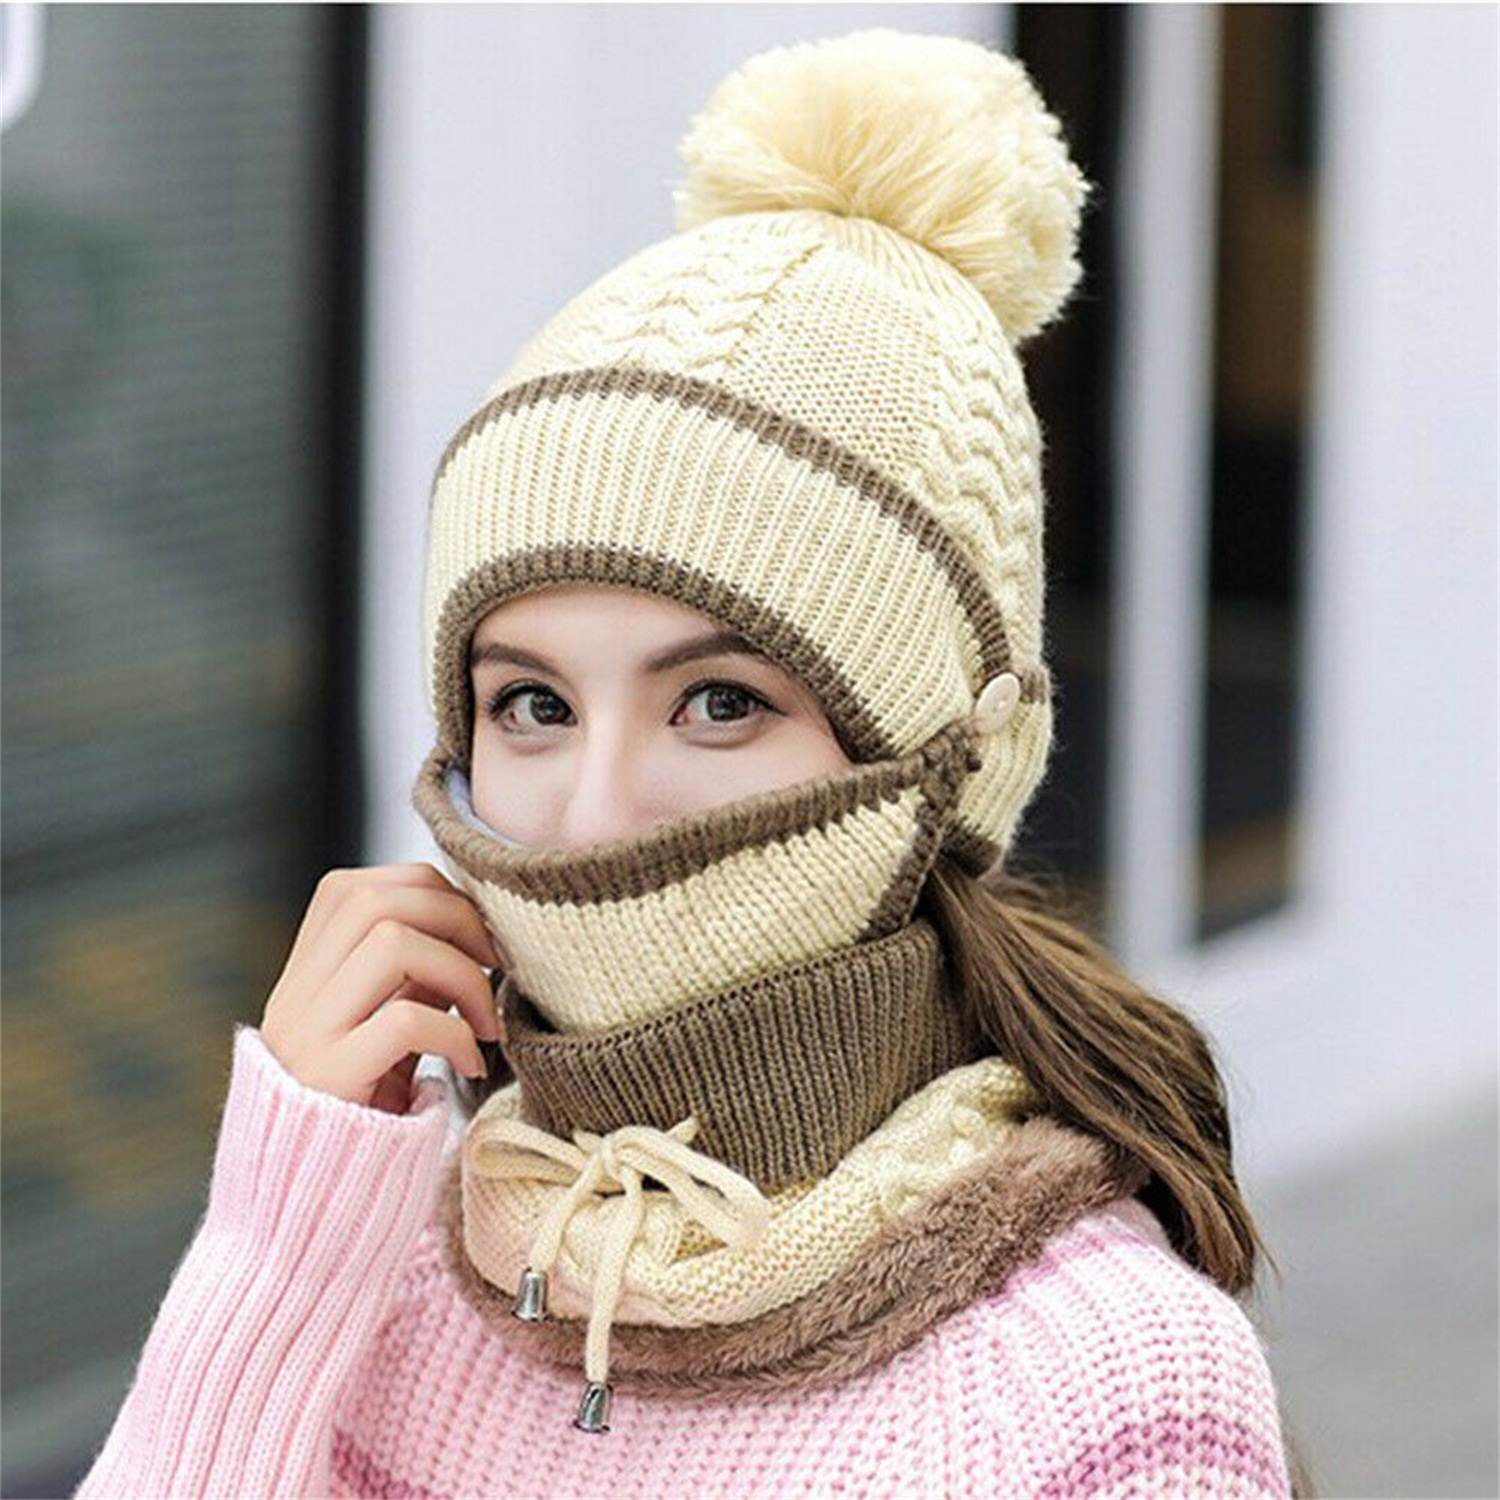 UMIPUBO 3 in 1 Winter Scarf Set Women Warm Scarf Set Thickend Knitted Beanie Hat Scarf Face Cover Pom Pom Cap Girls Warm Hat Earmuffs Cap for Indoor and Outdoor Sports